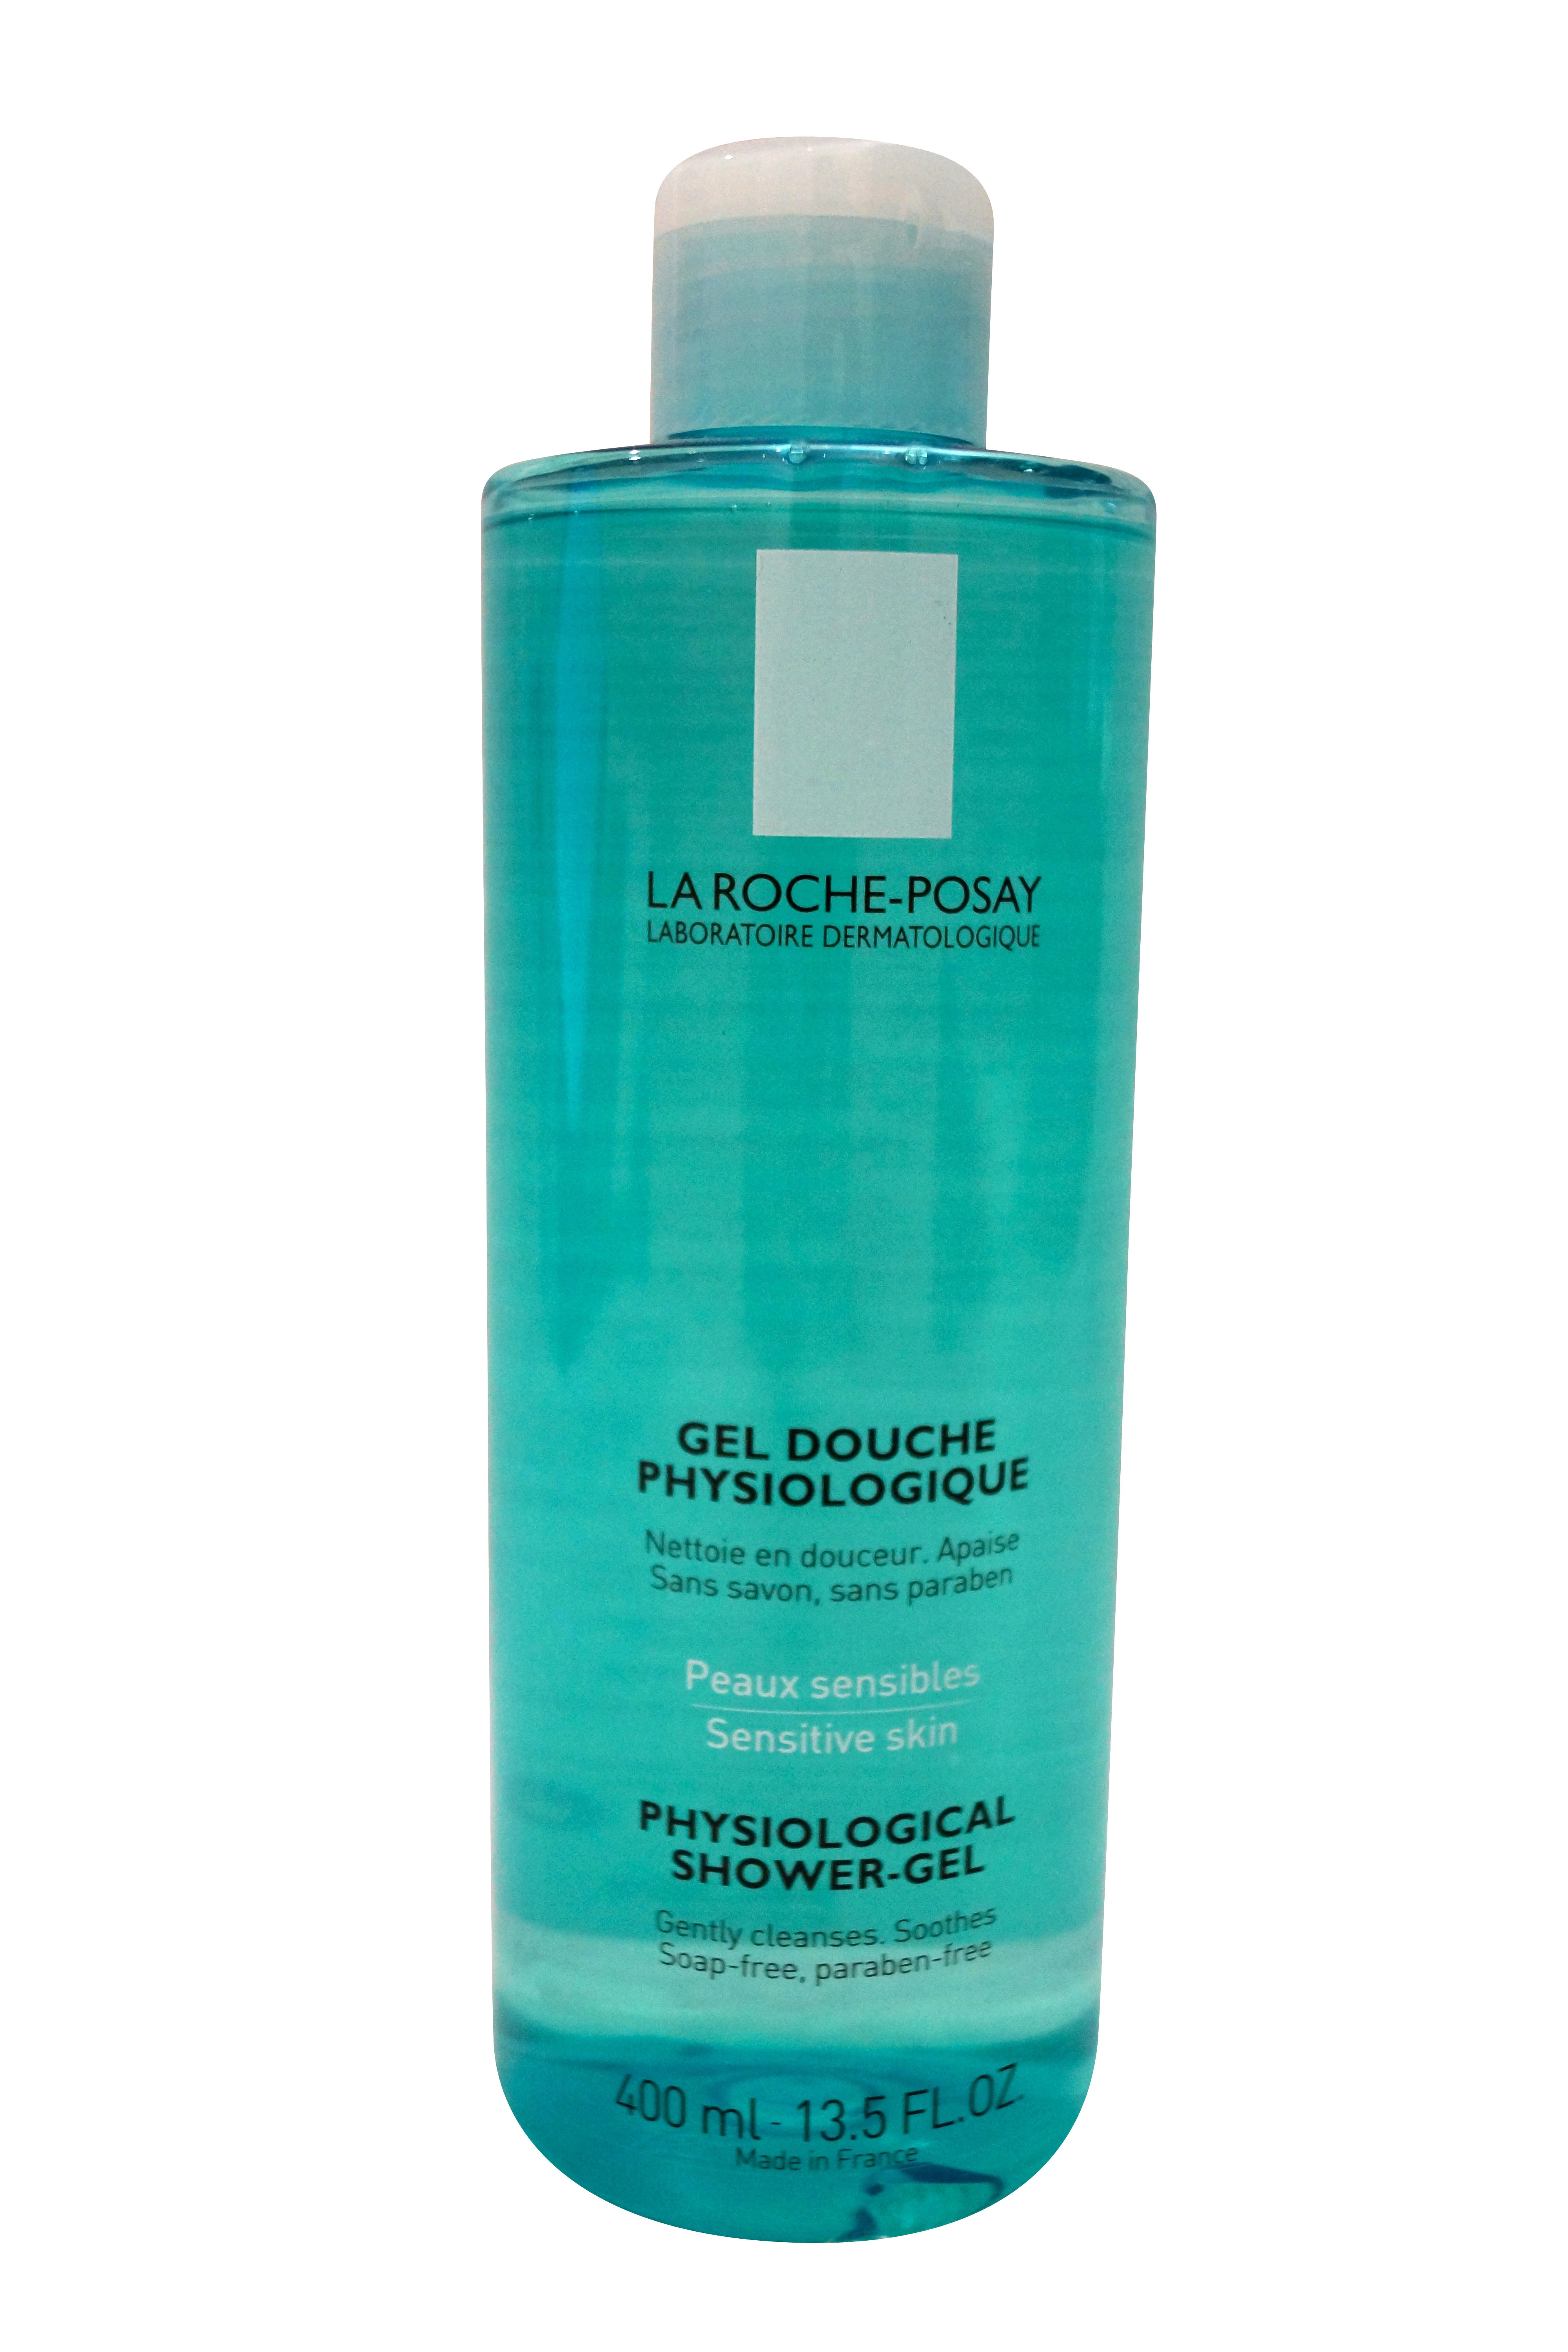 La Roche Posay Physiological Shower Gel 400 Ml 13 5 Oz Ebay